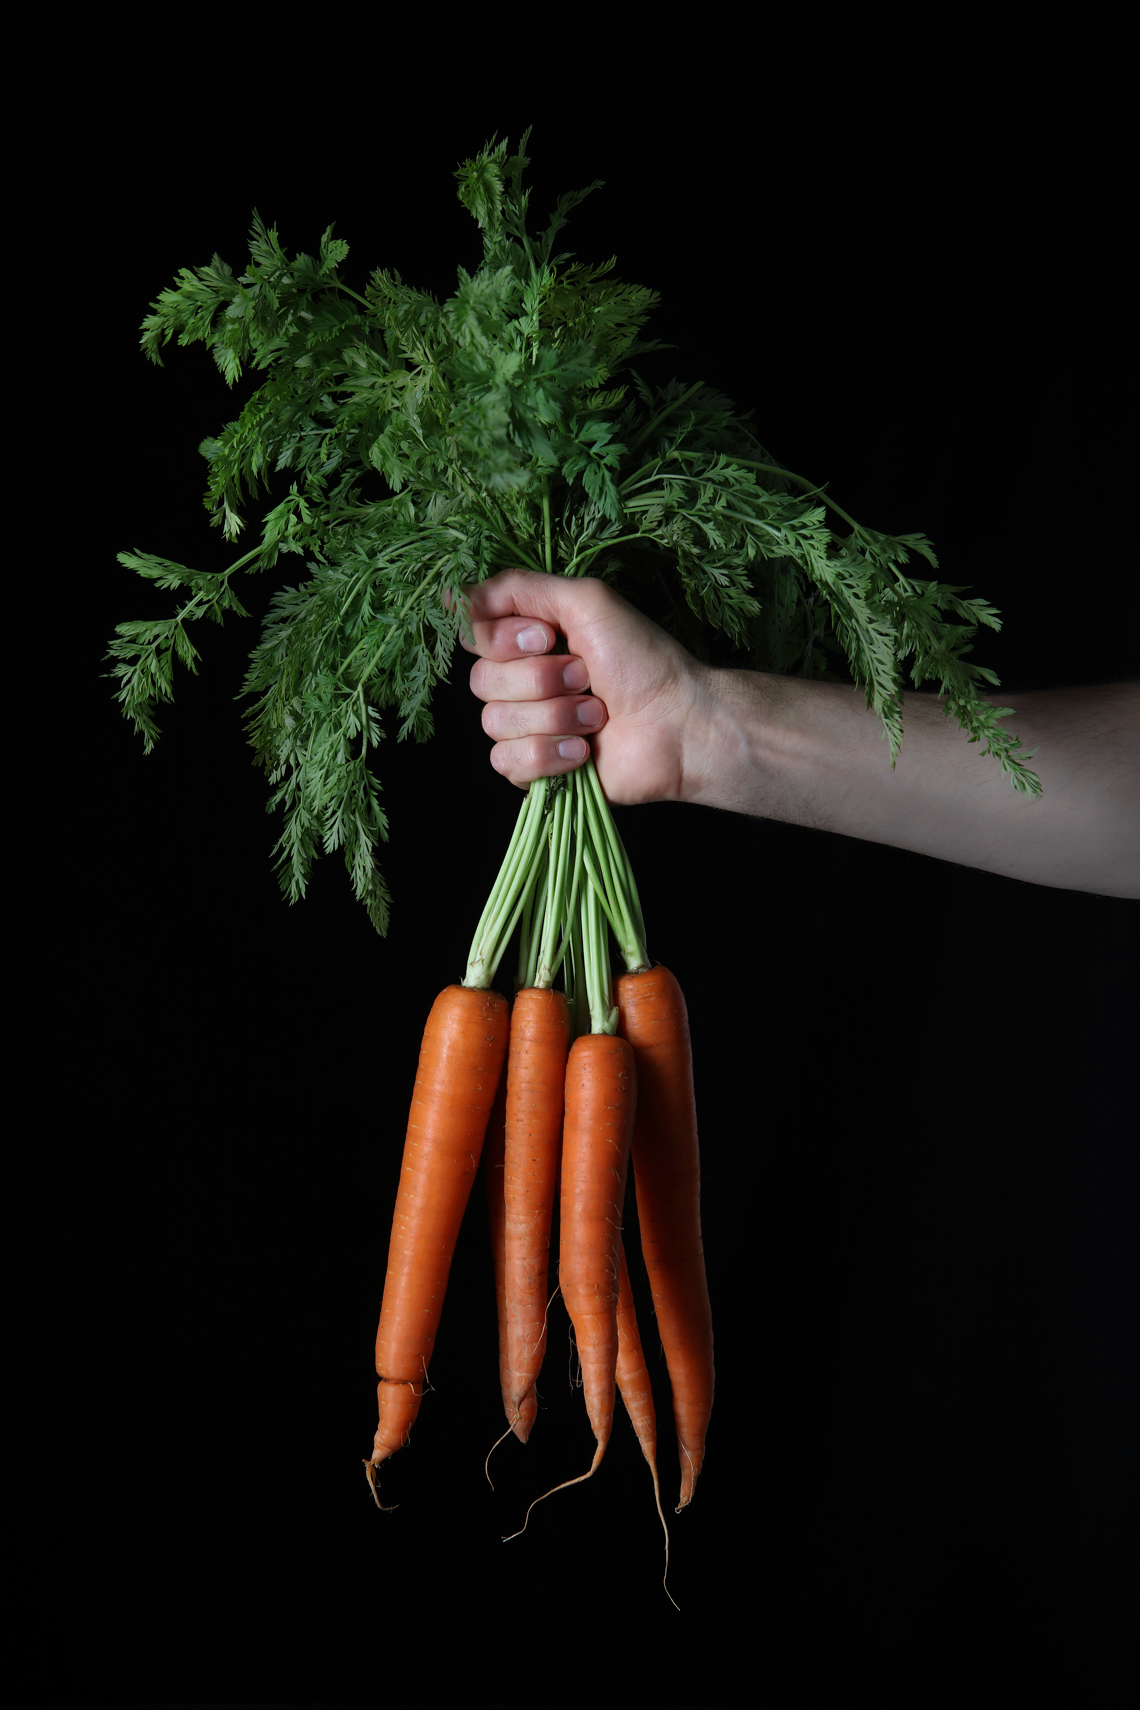 Bunch-Of-Carrots-Hand-Web